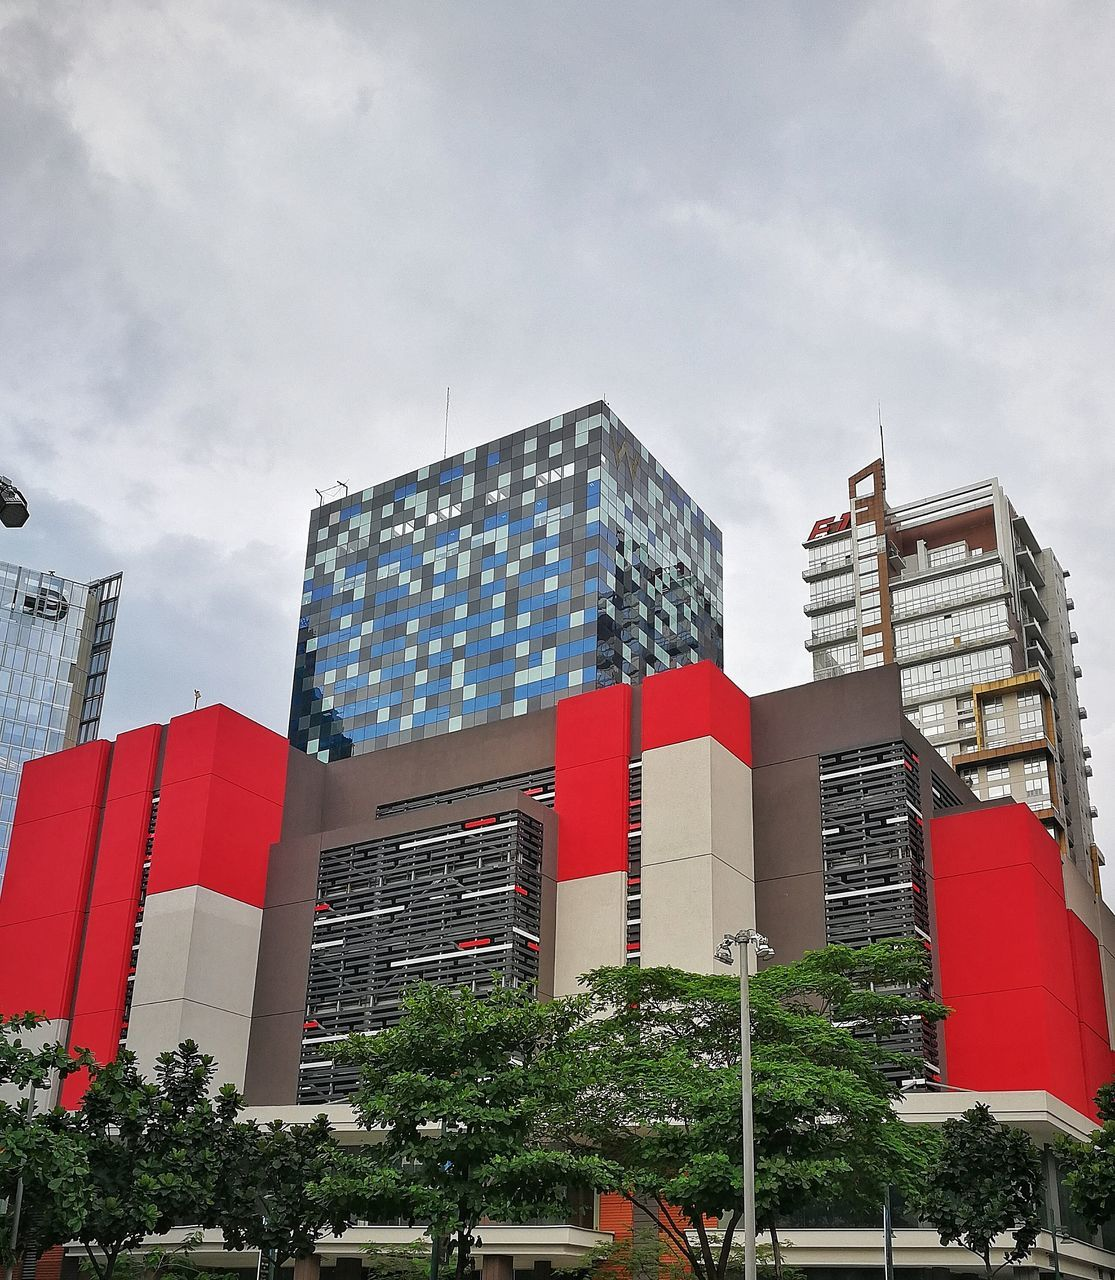 architecture, building exterior, built structure, low angle view, skyscraper, modern, red, day, sky, outdoors, no people, city, tree